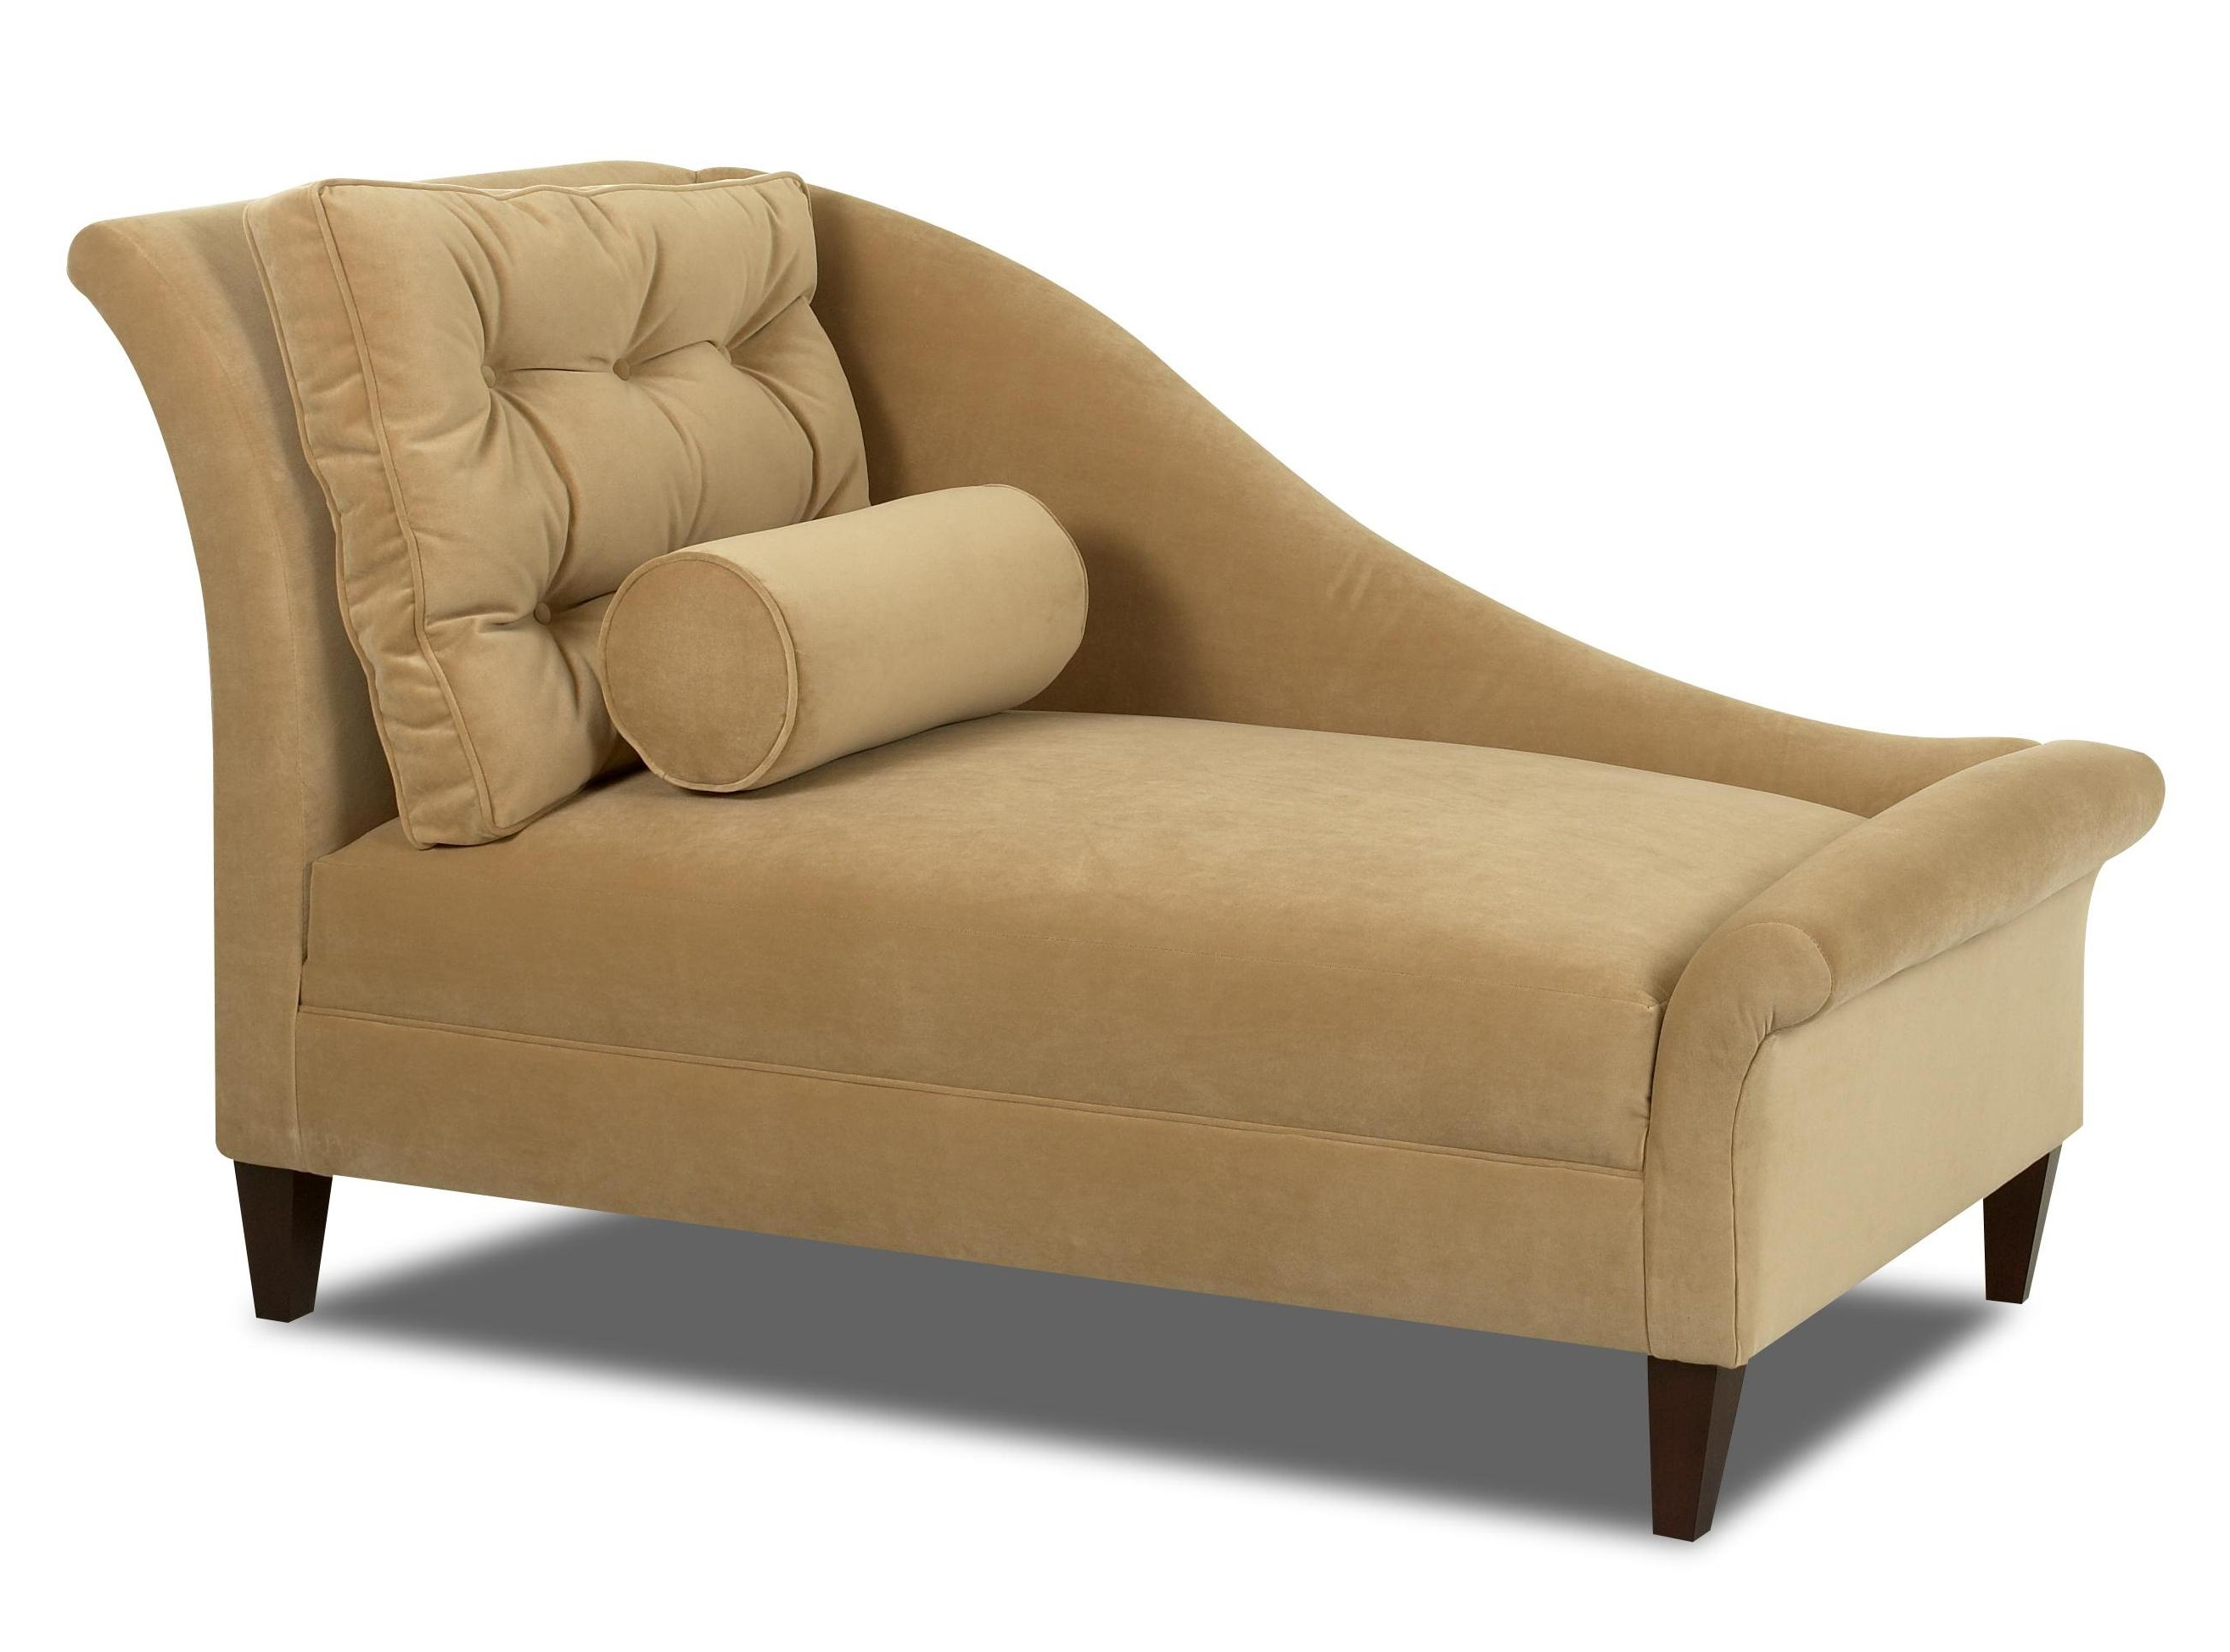 Convertible Chair : Living Room Lounge Chair Sitting Chairs Lounge Regarding Fashionable Chaise Lounge Chairs Without Arms (View 12 of 15)